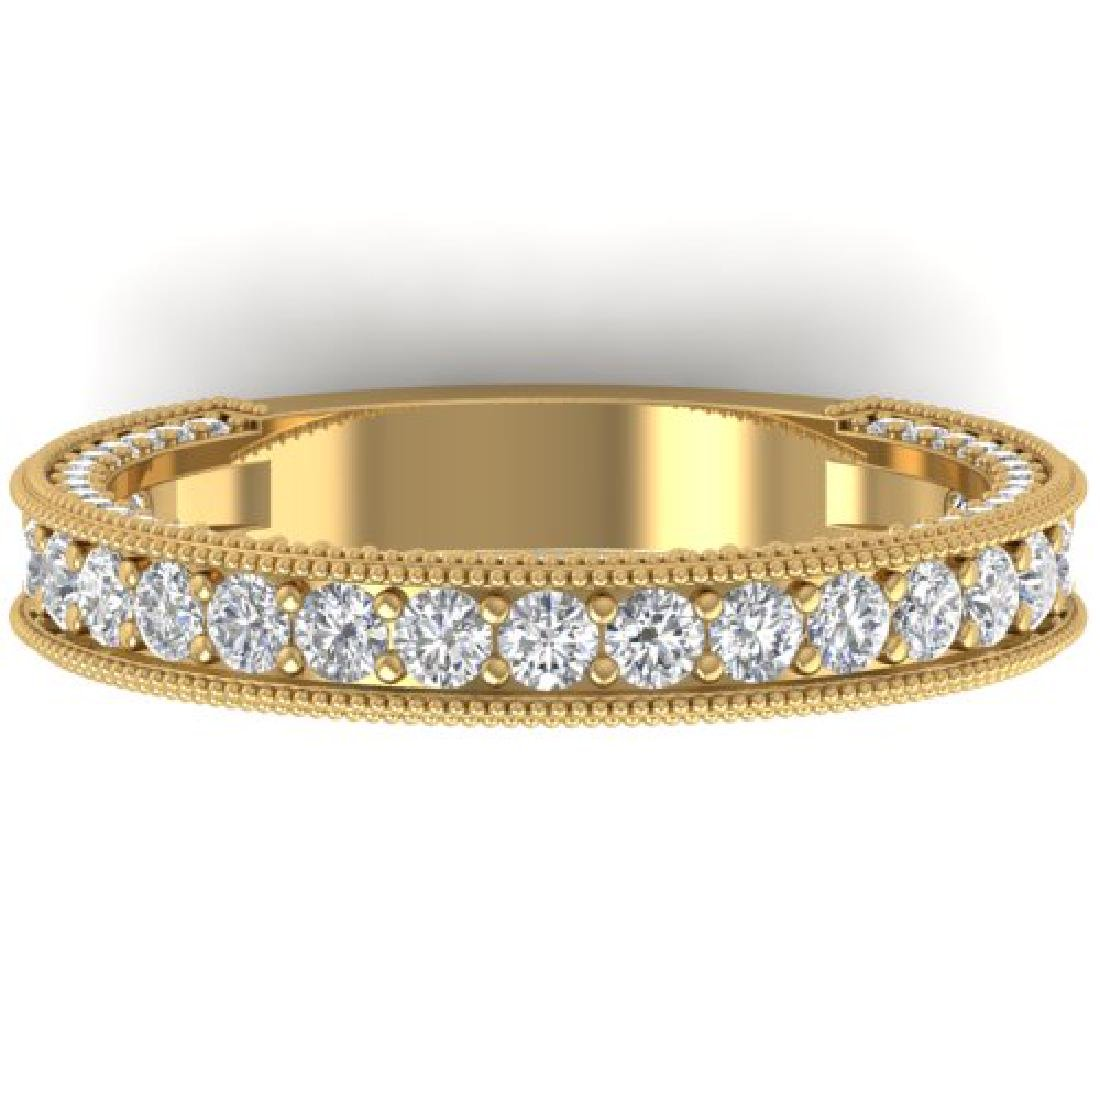 1.25 CTW VS/SI Diamond Art Deco Eternity Band Ring 14K